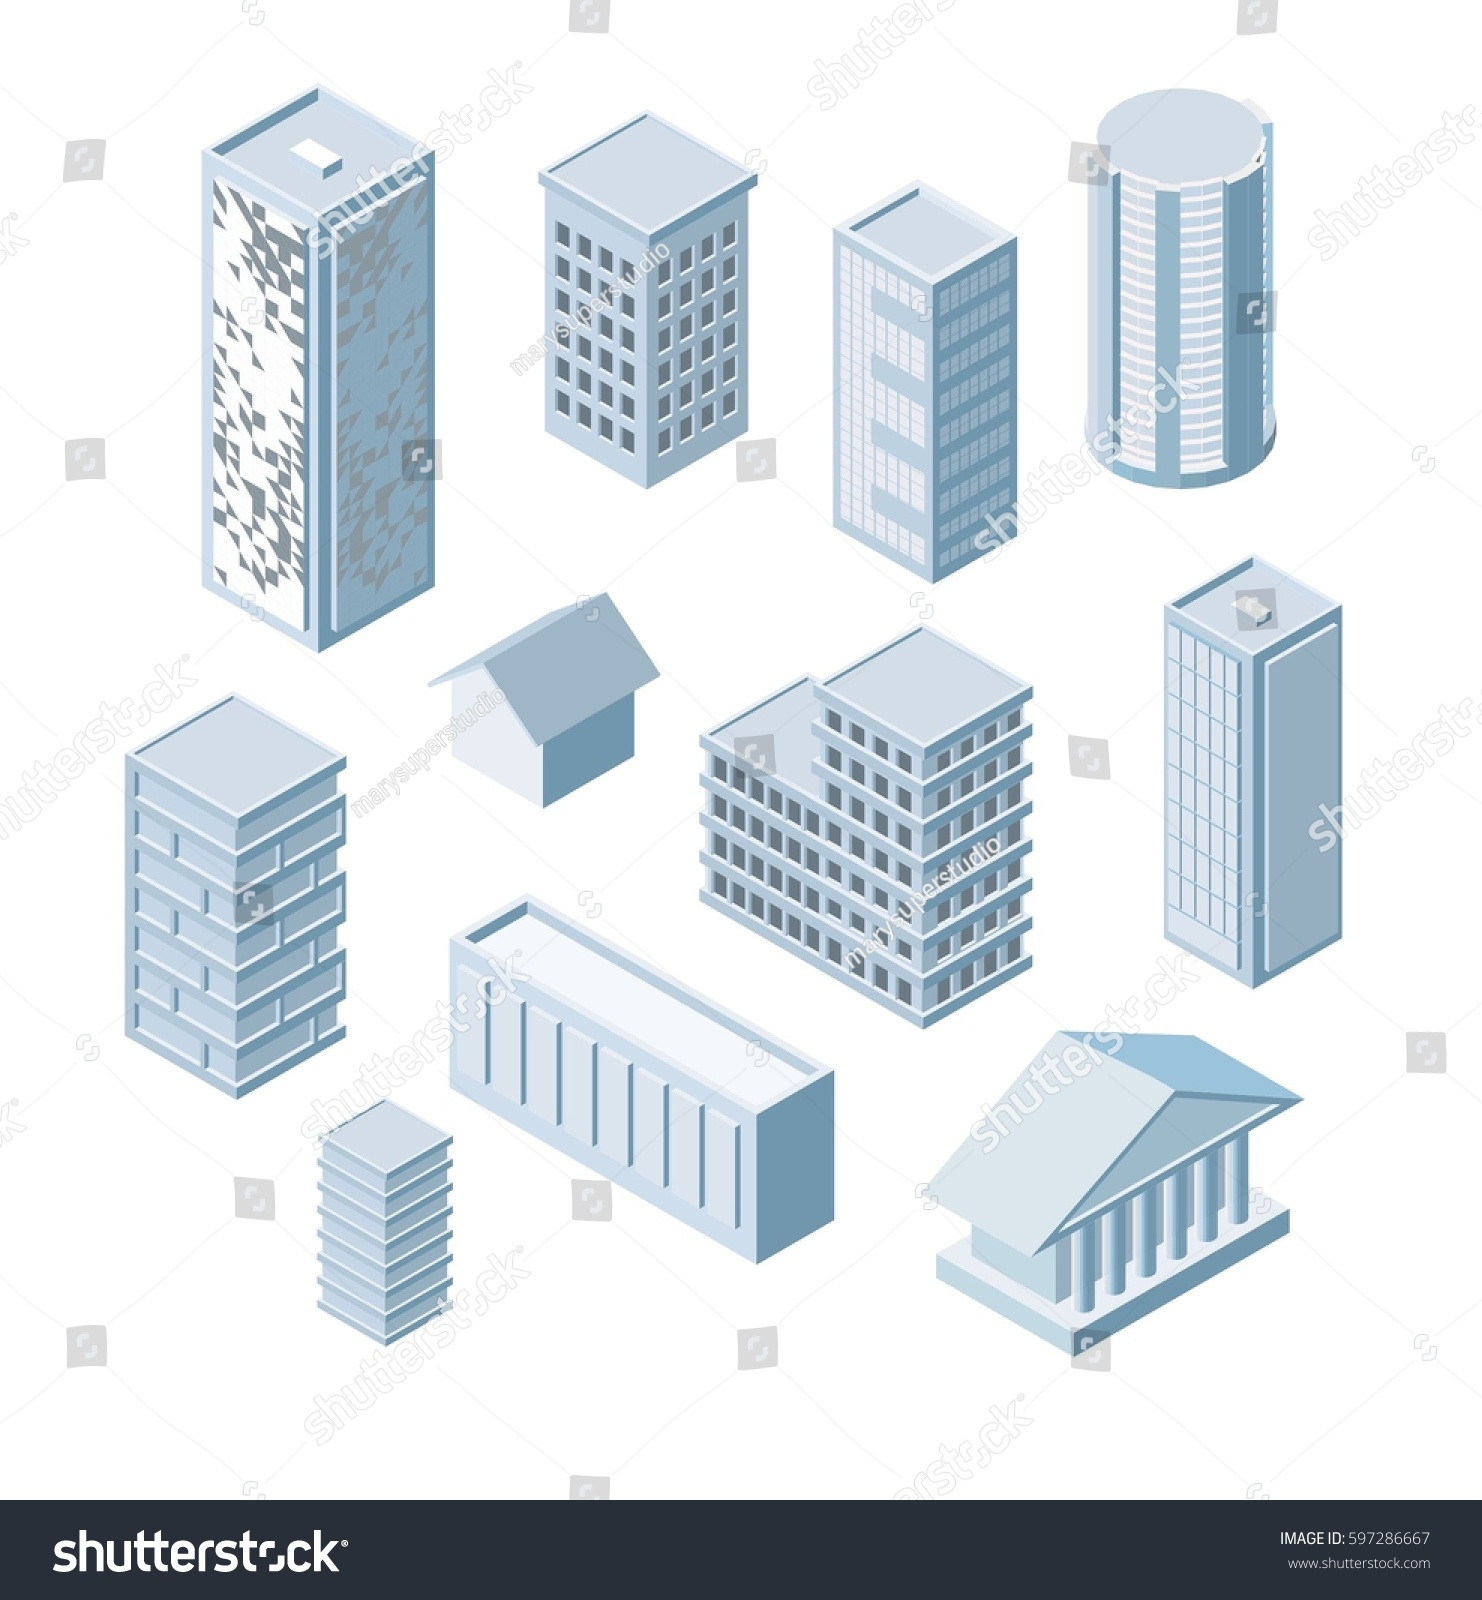 Build Your Own Isometric City Vector Stock Vector 597286667 ...